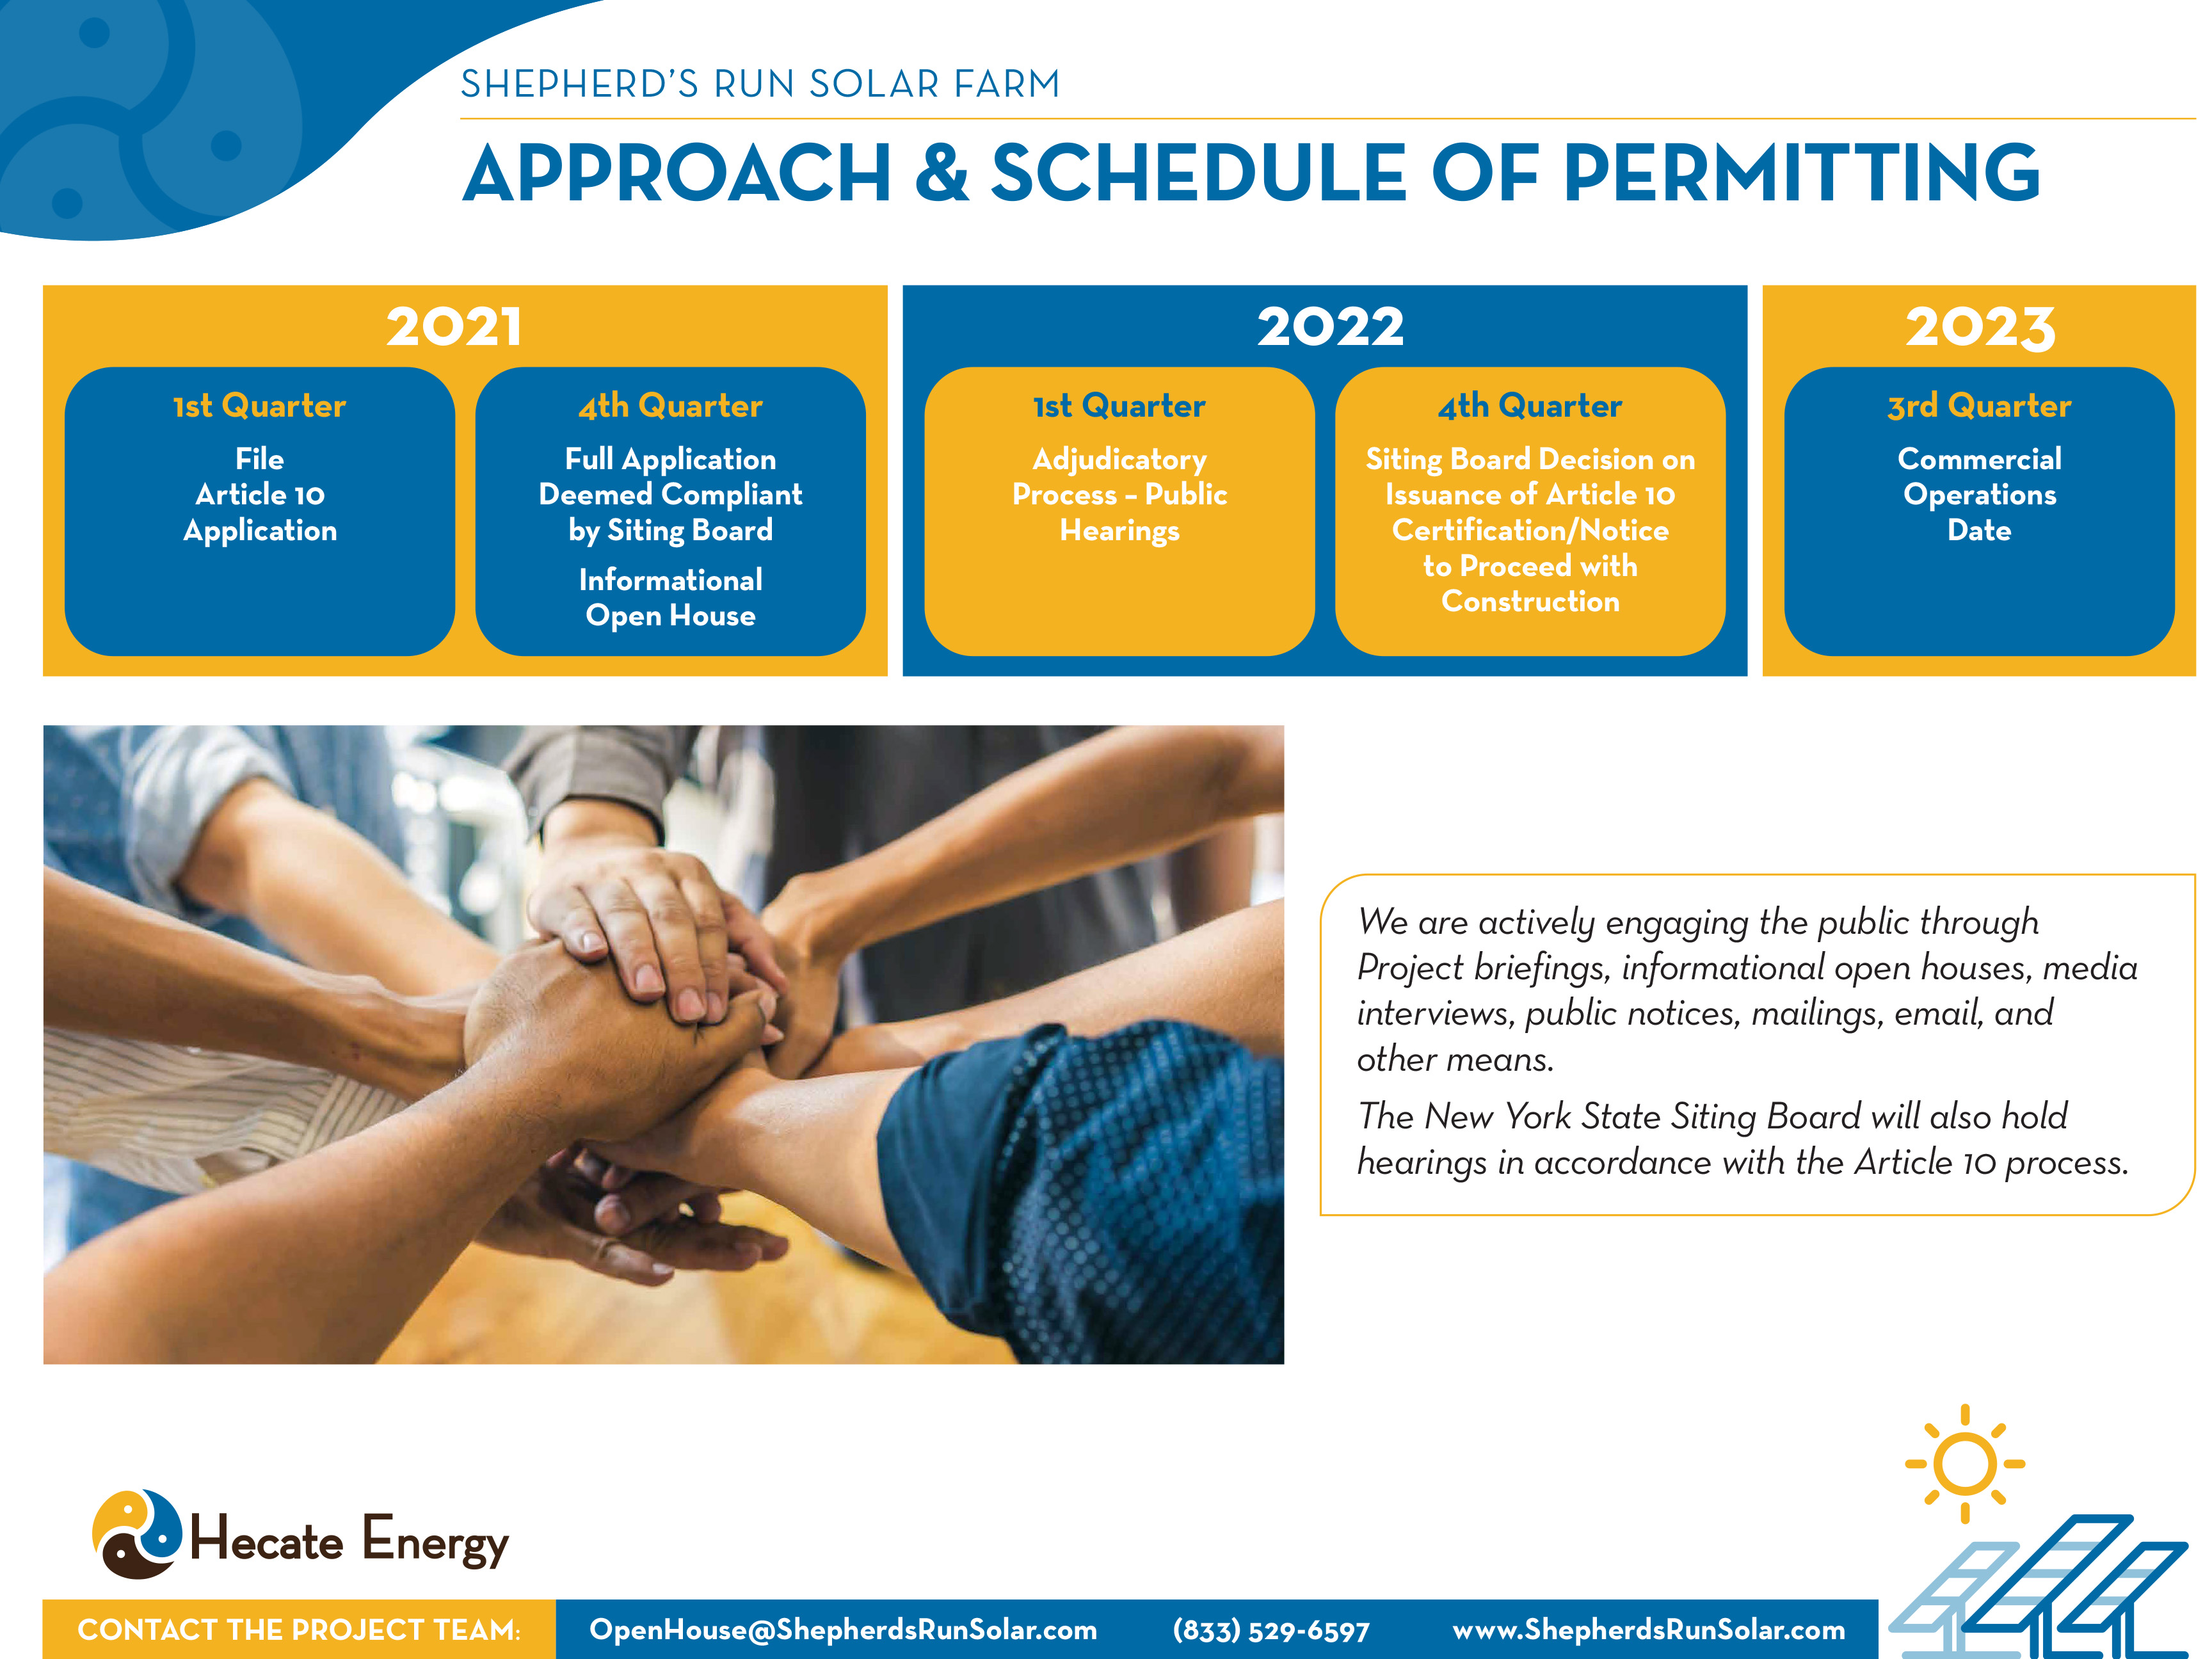 Approach and Schedule of Permitting